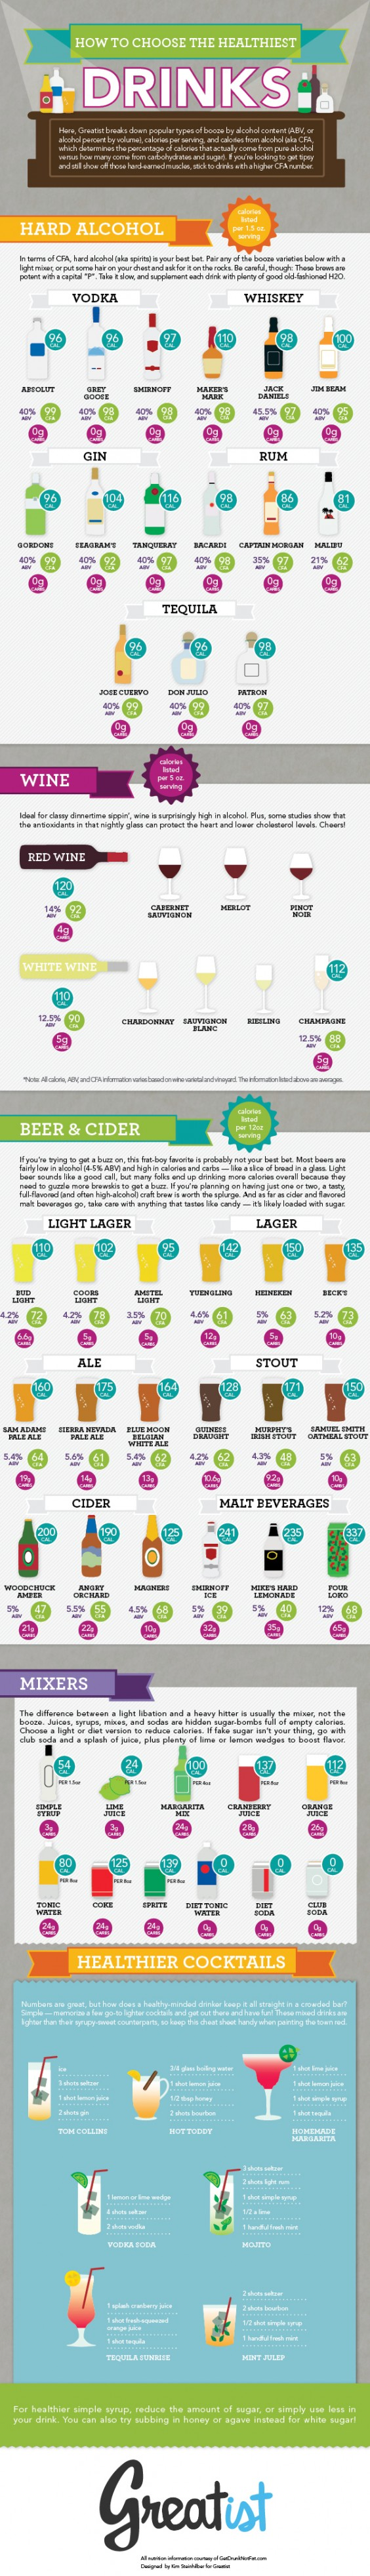 Healthier Drinking Infographic